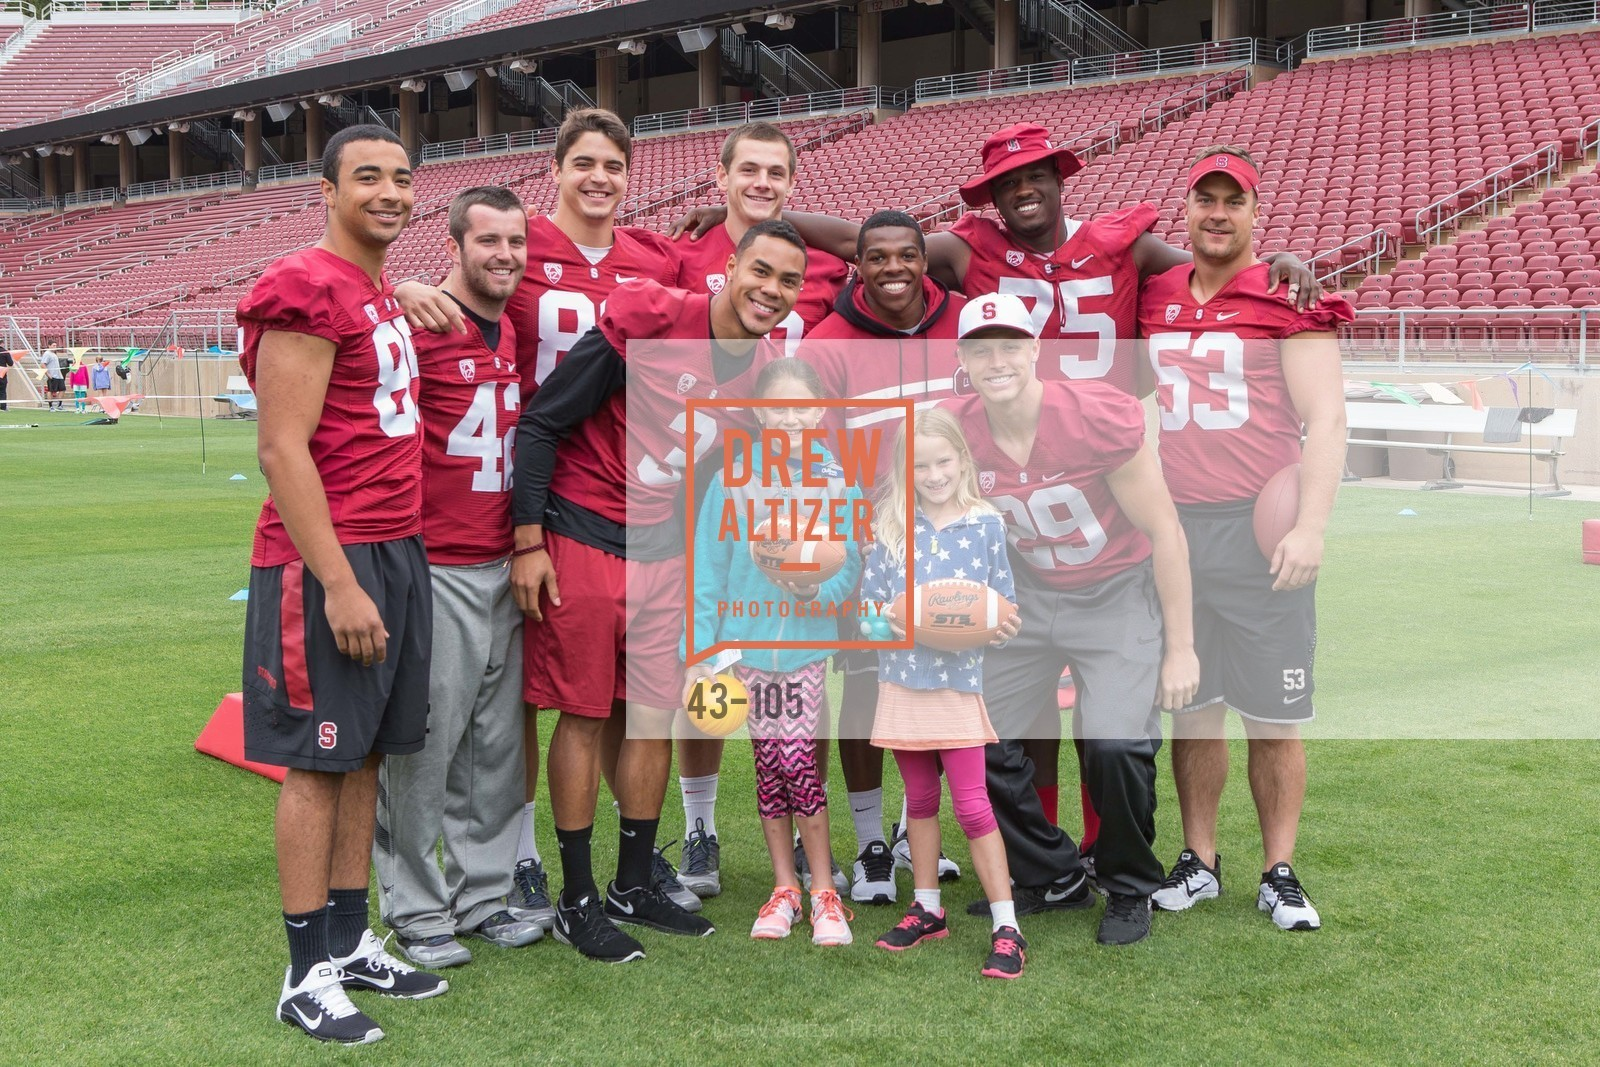 Stanford Football Team, Children's Champions, Stanford Stadium. 	601 Nelson Rd, May 16th, 2015,Drew Altizer, Drew Altizer Photography, full-service agency, private events, San Francisco photographer, photographer california